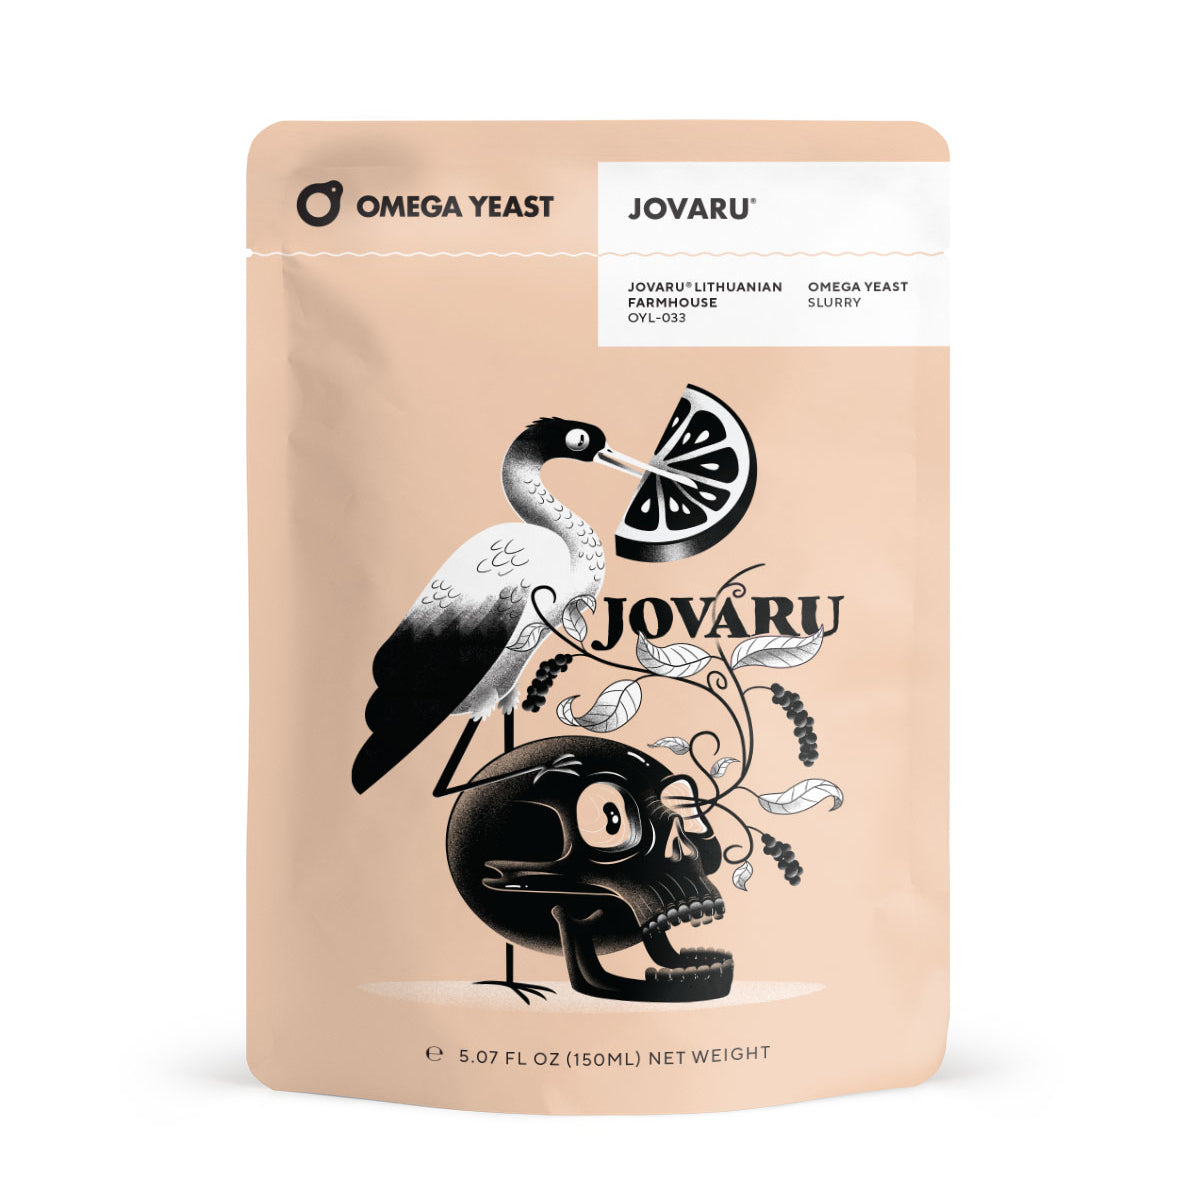 Omega Yeast OYL-033 Jovaru™ Lithuanian Farmhouse